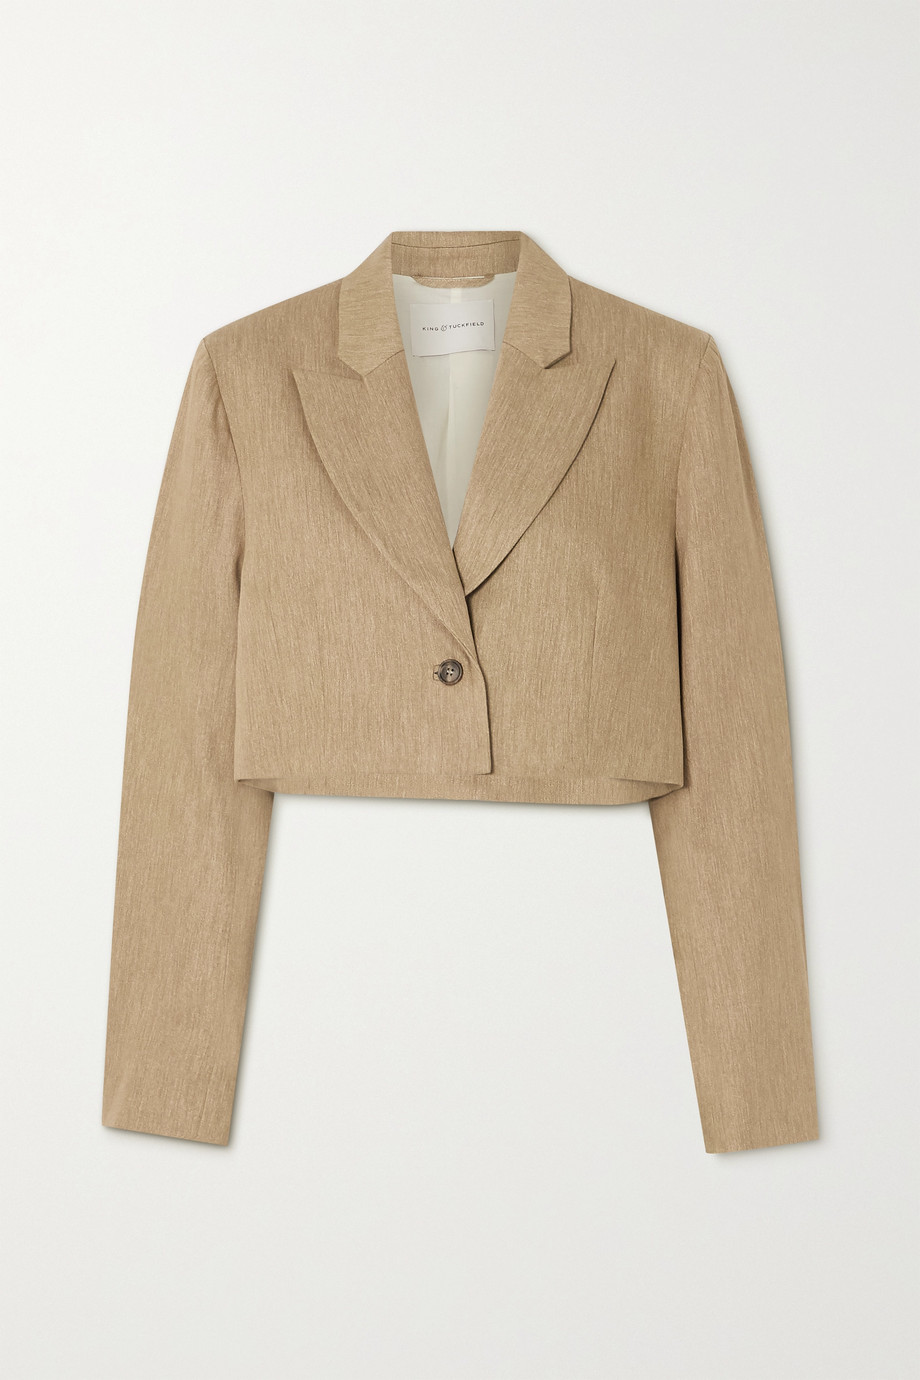 King & Tuckfield Cropped cotton blazer